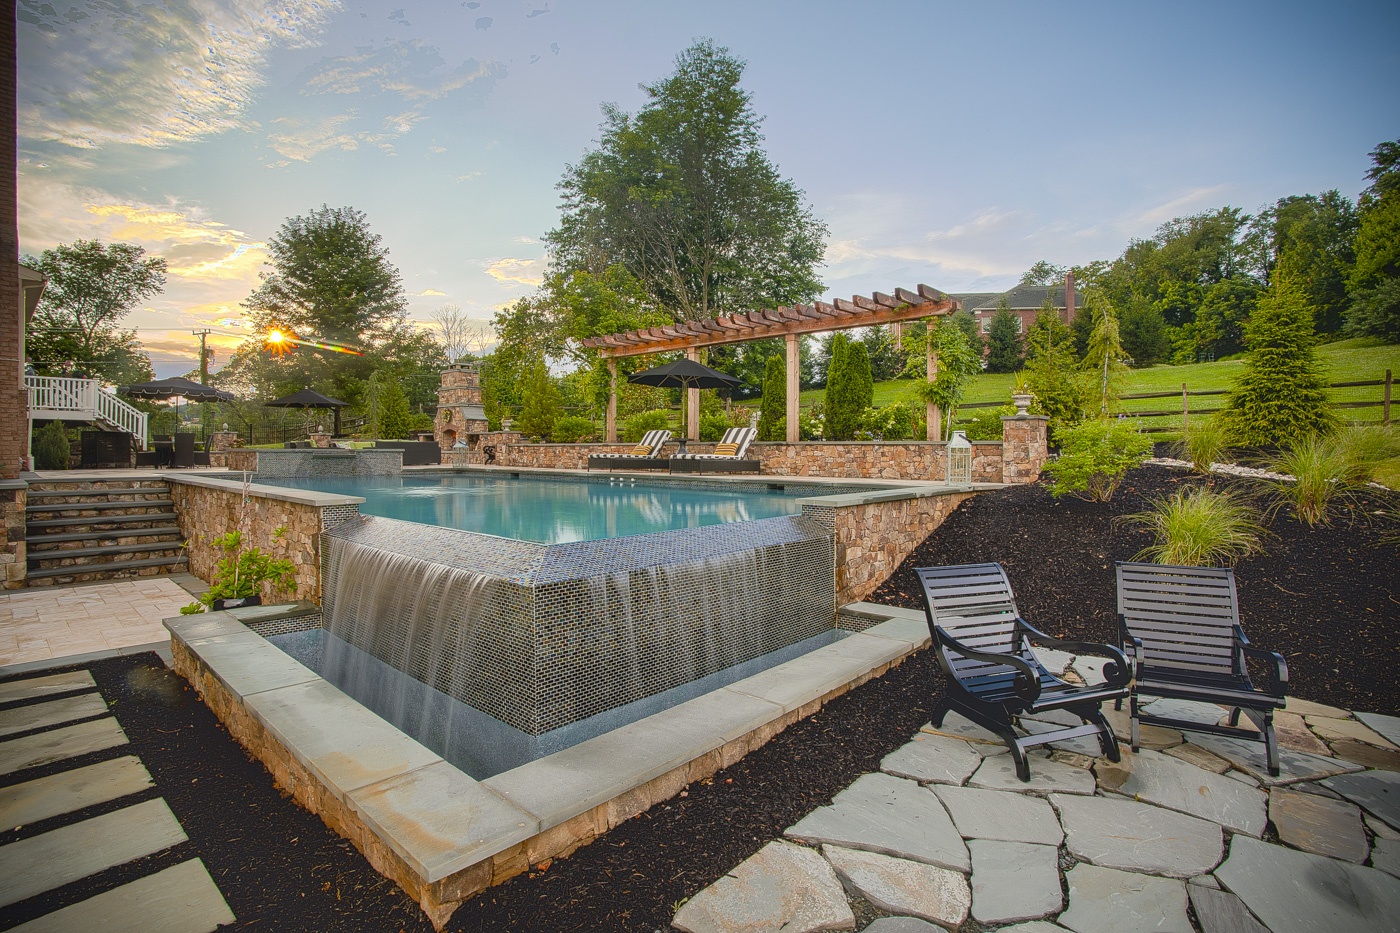 Pool Pictures and Ideas to Inspire Your Ultimate Backyard in Ashburn, Aldie, or Leesburg, VA